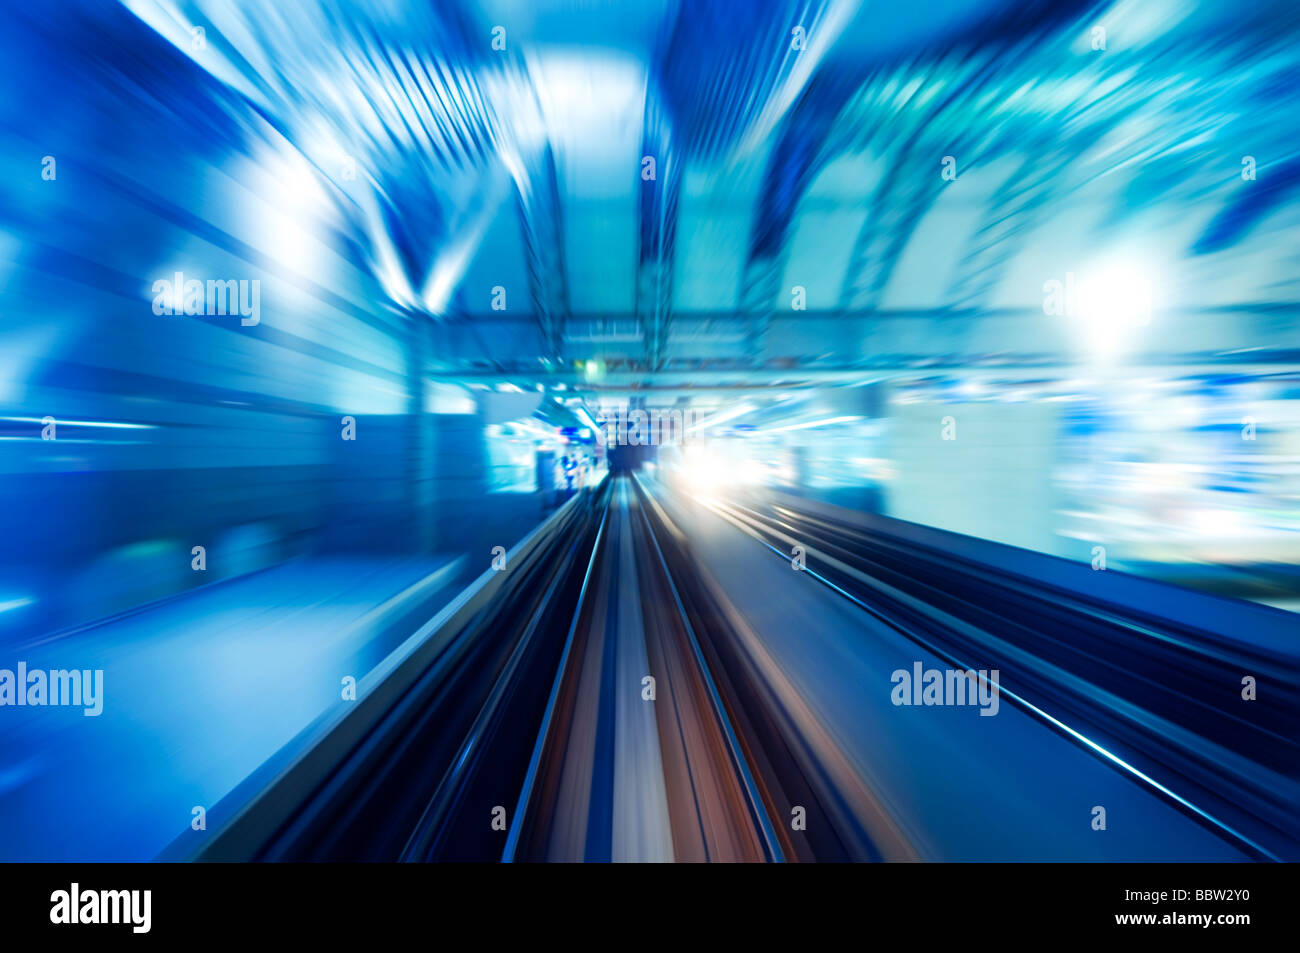 High speed train entering station platform. Focus on the rail road. - Stock Image